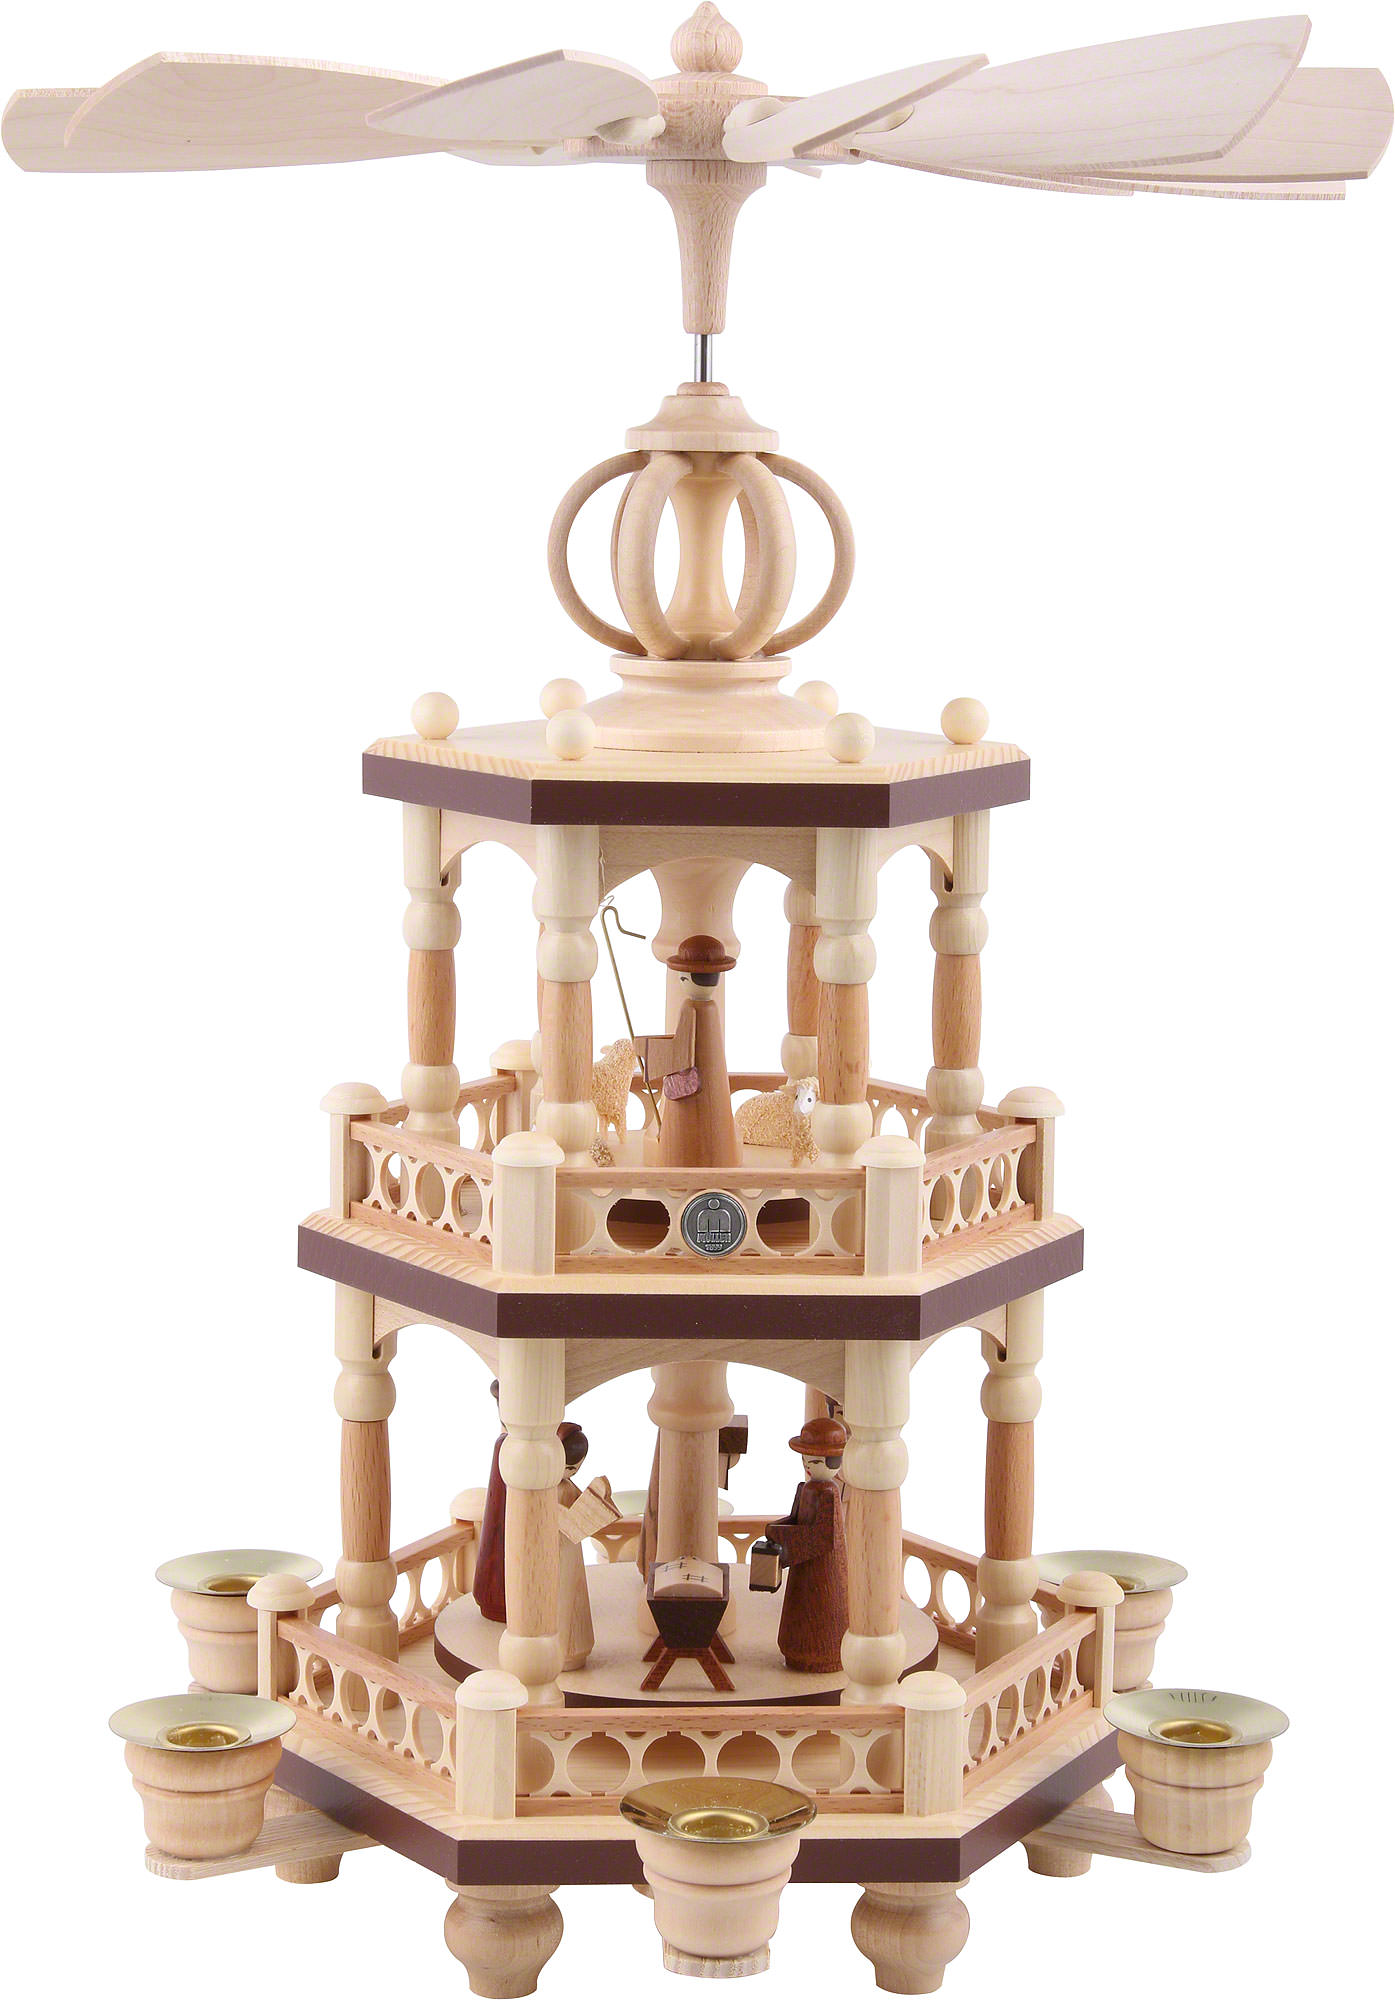 Christmas Pyramid.2 Tier Christmas Pyramid The Christmas Story 40 Cm 16 Inch